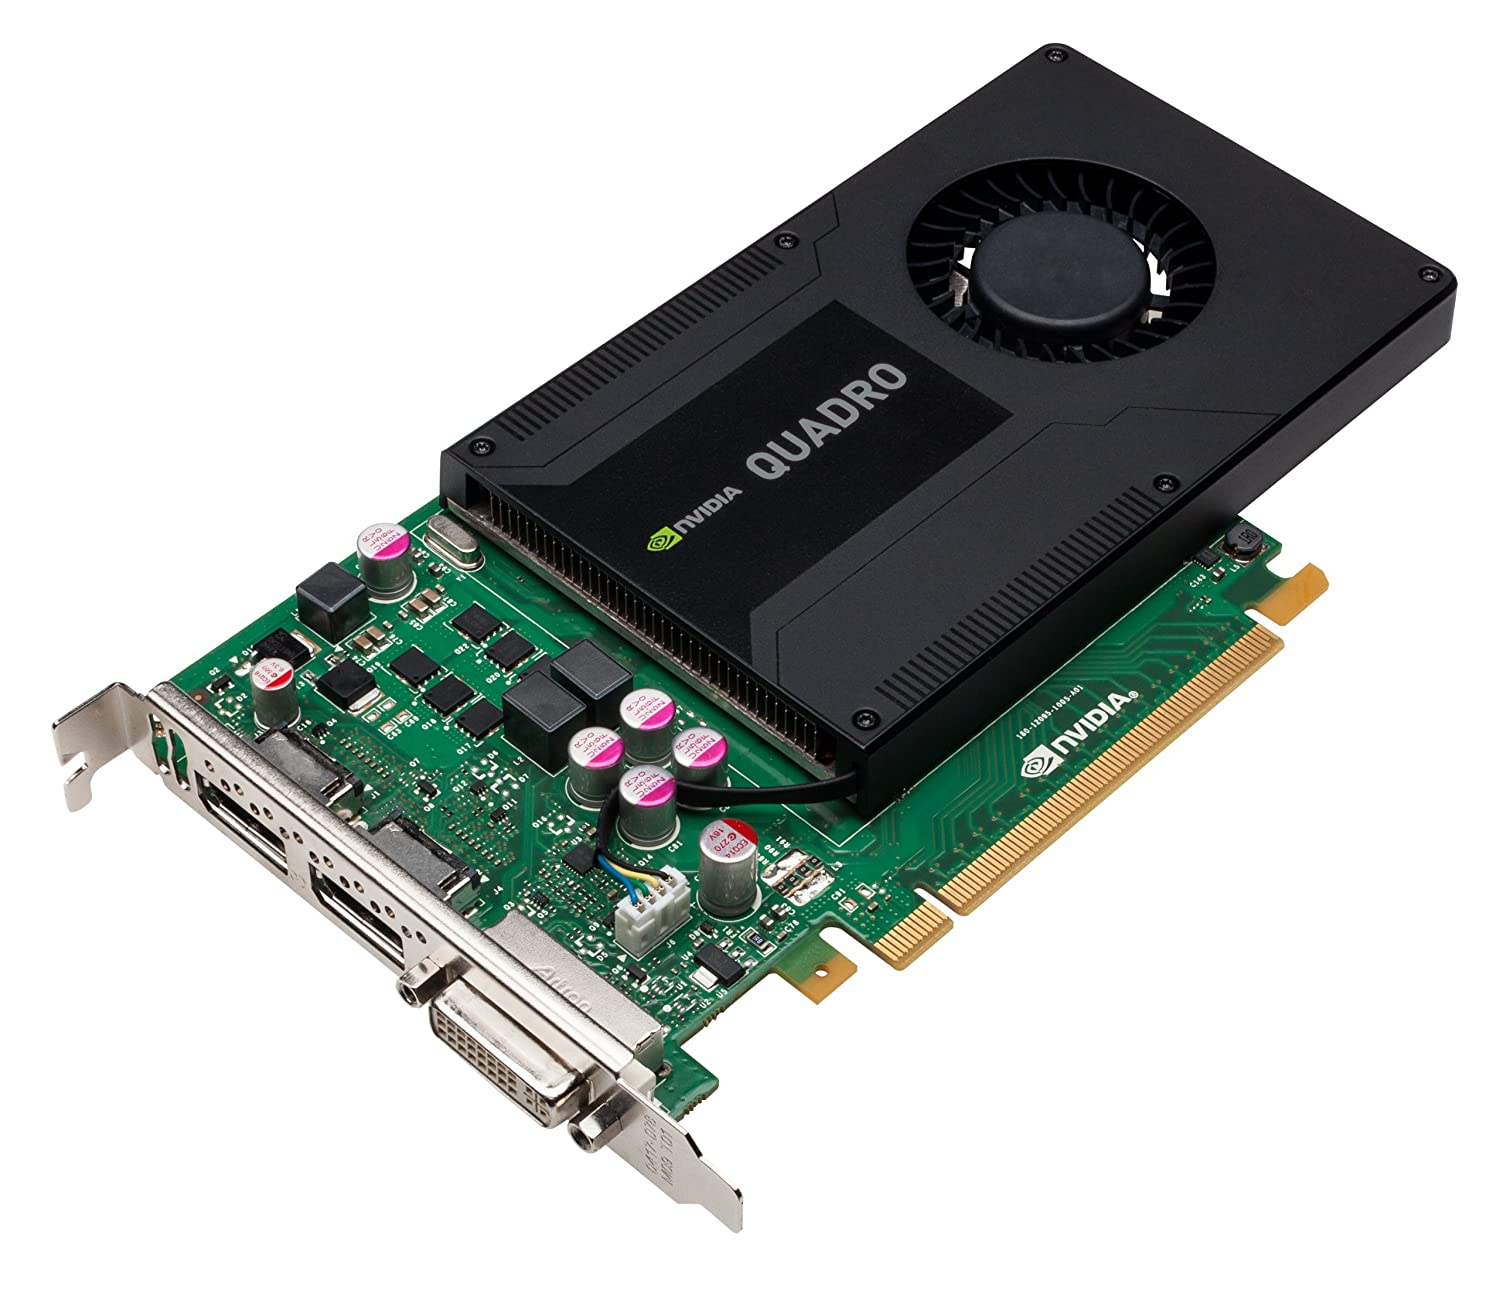 nvidia quadro k2000 driver windows 7 64 bit